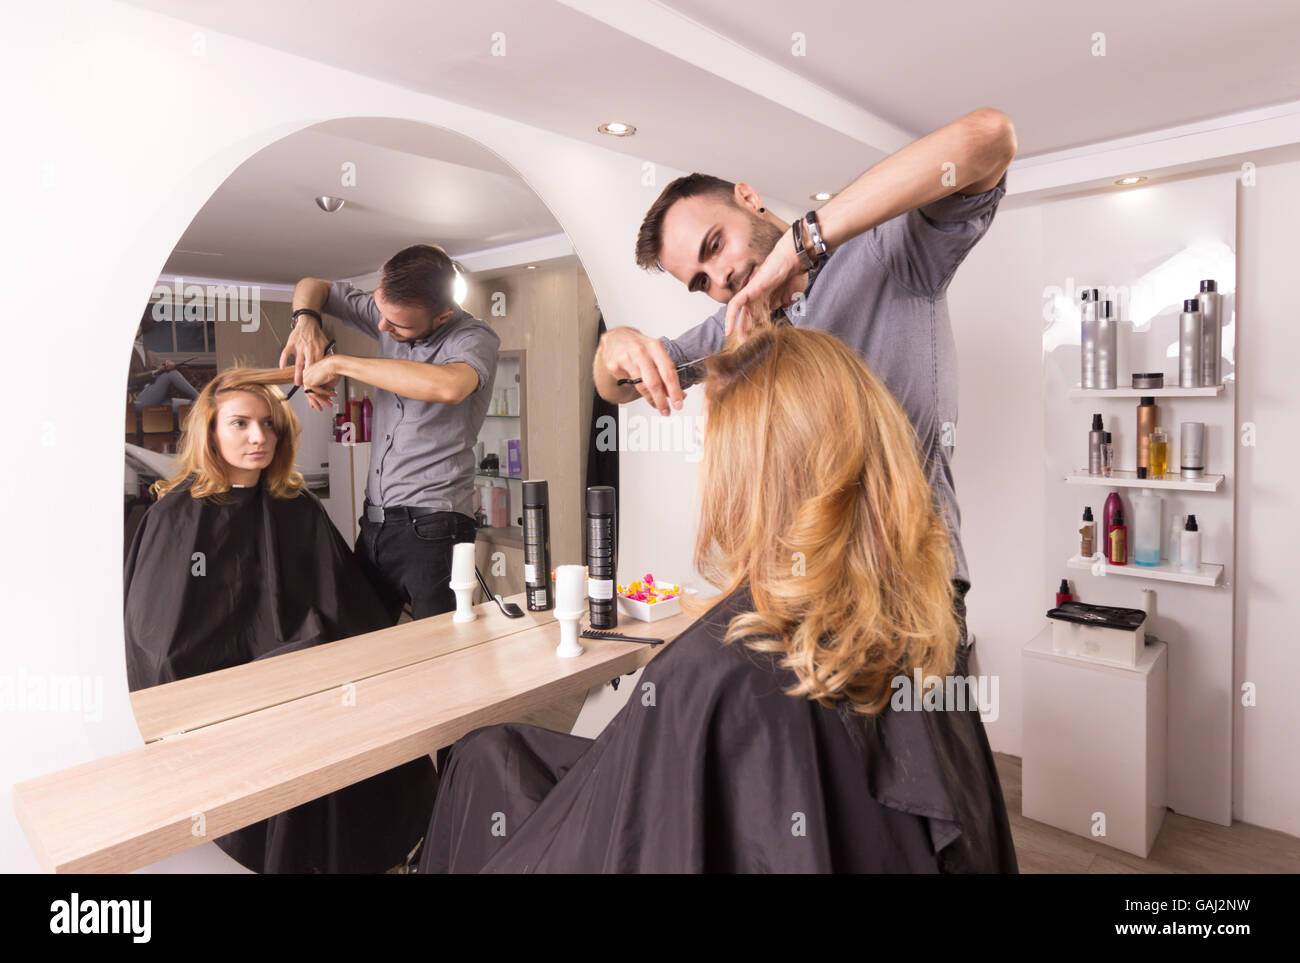 hairstylist cutting hair woman mirror rear view - Stock Image